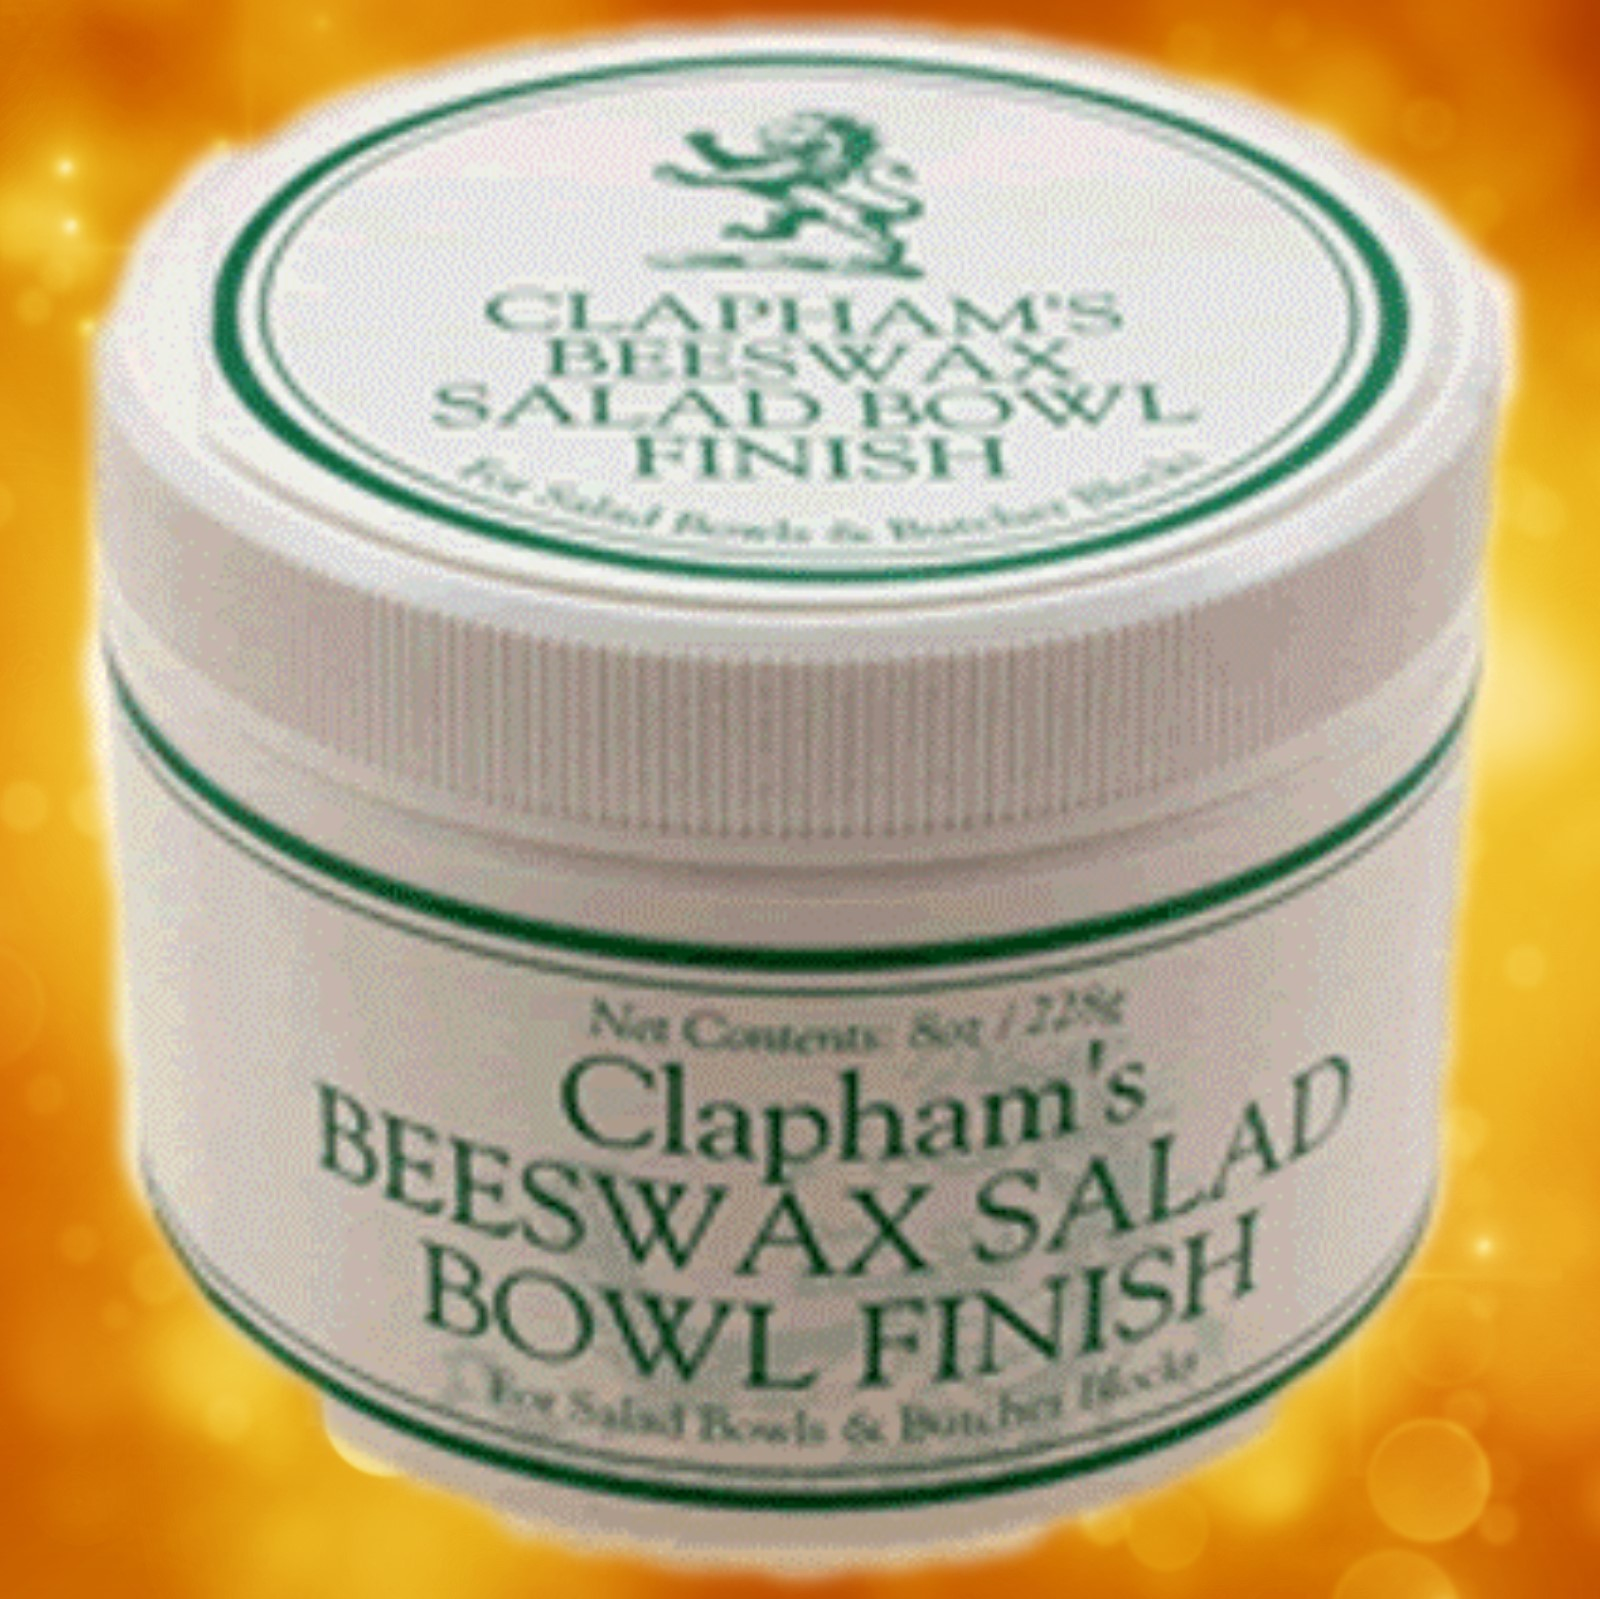 Clapham's Beeswax Salad Bowl Finish 870-3008 Clapham's Beeswax Salad Bowl Finish 870-3008